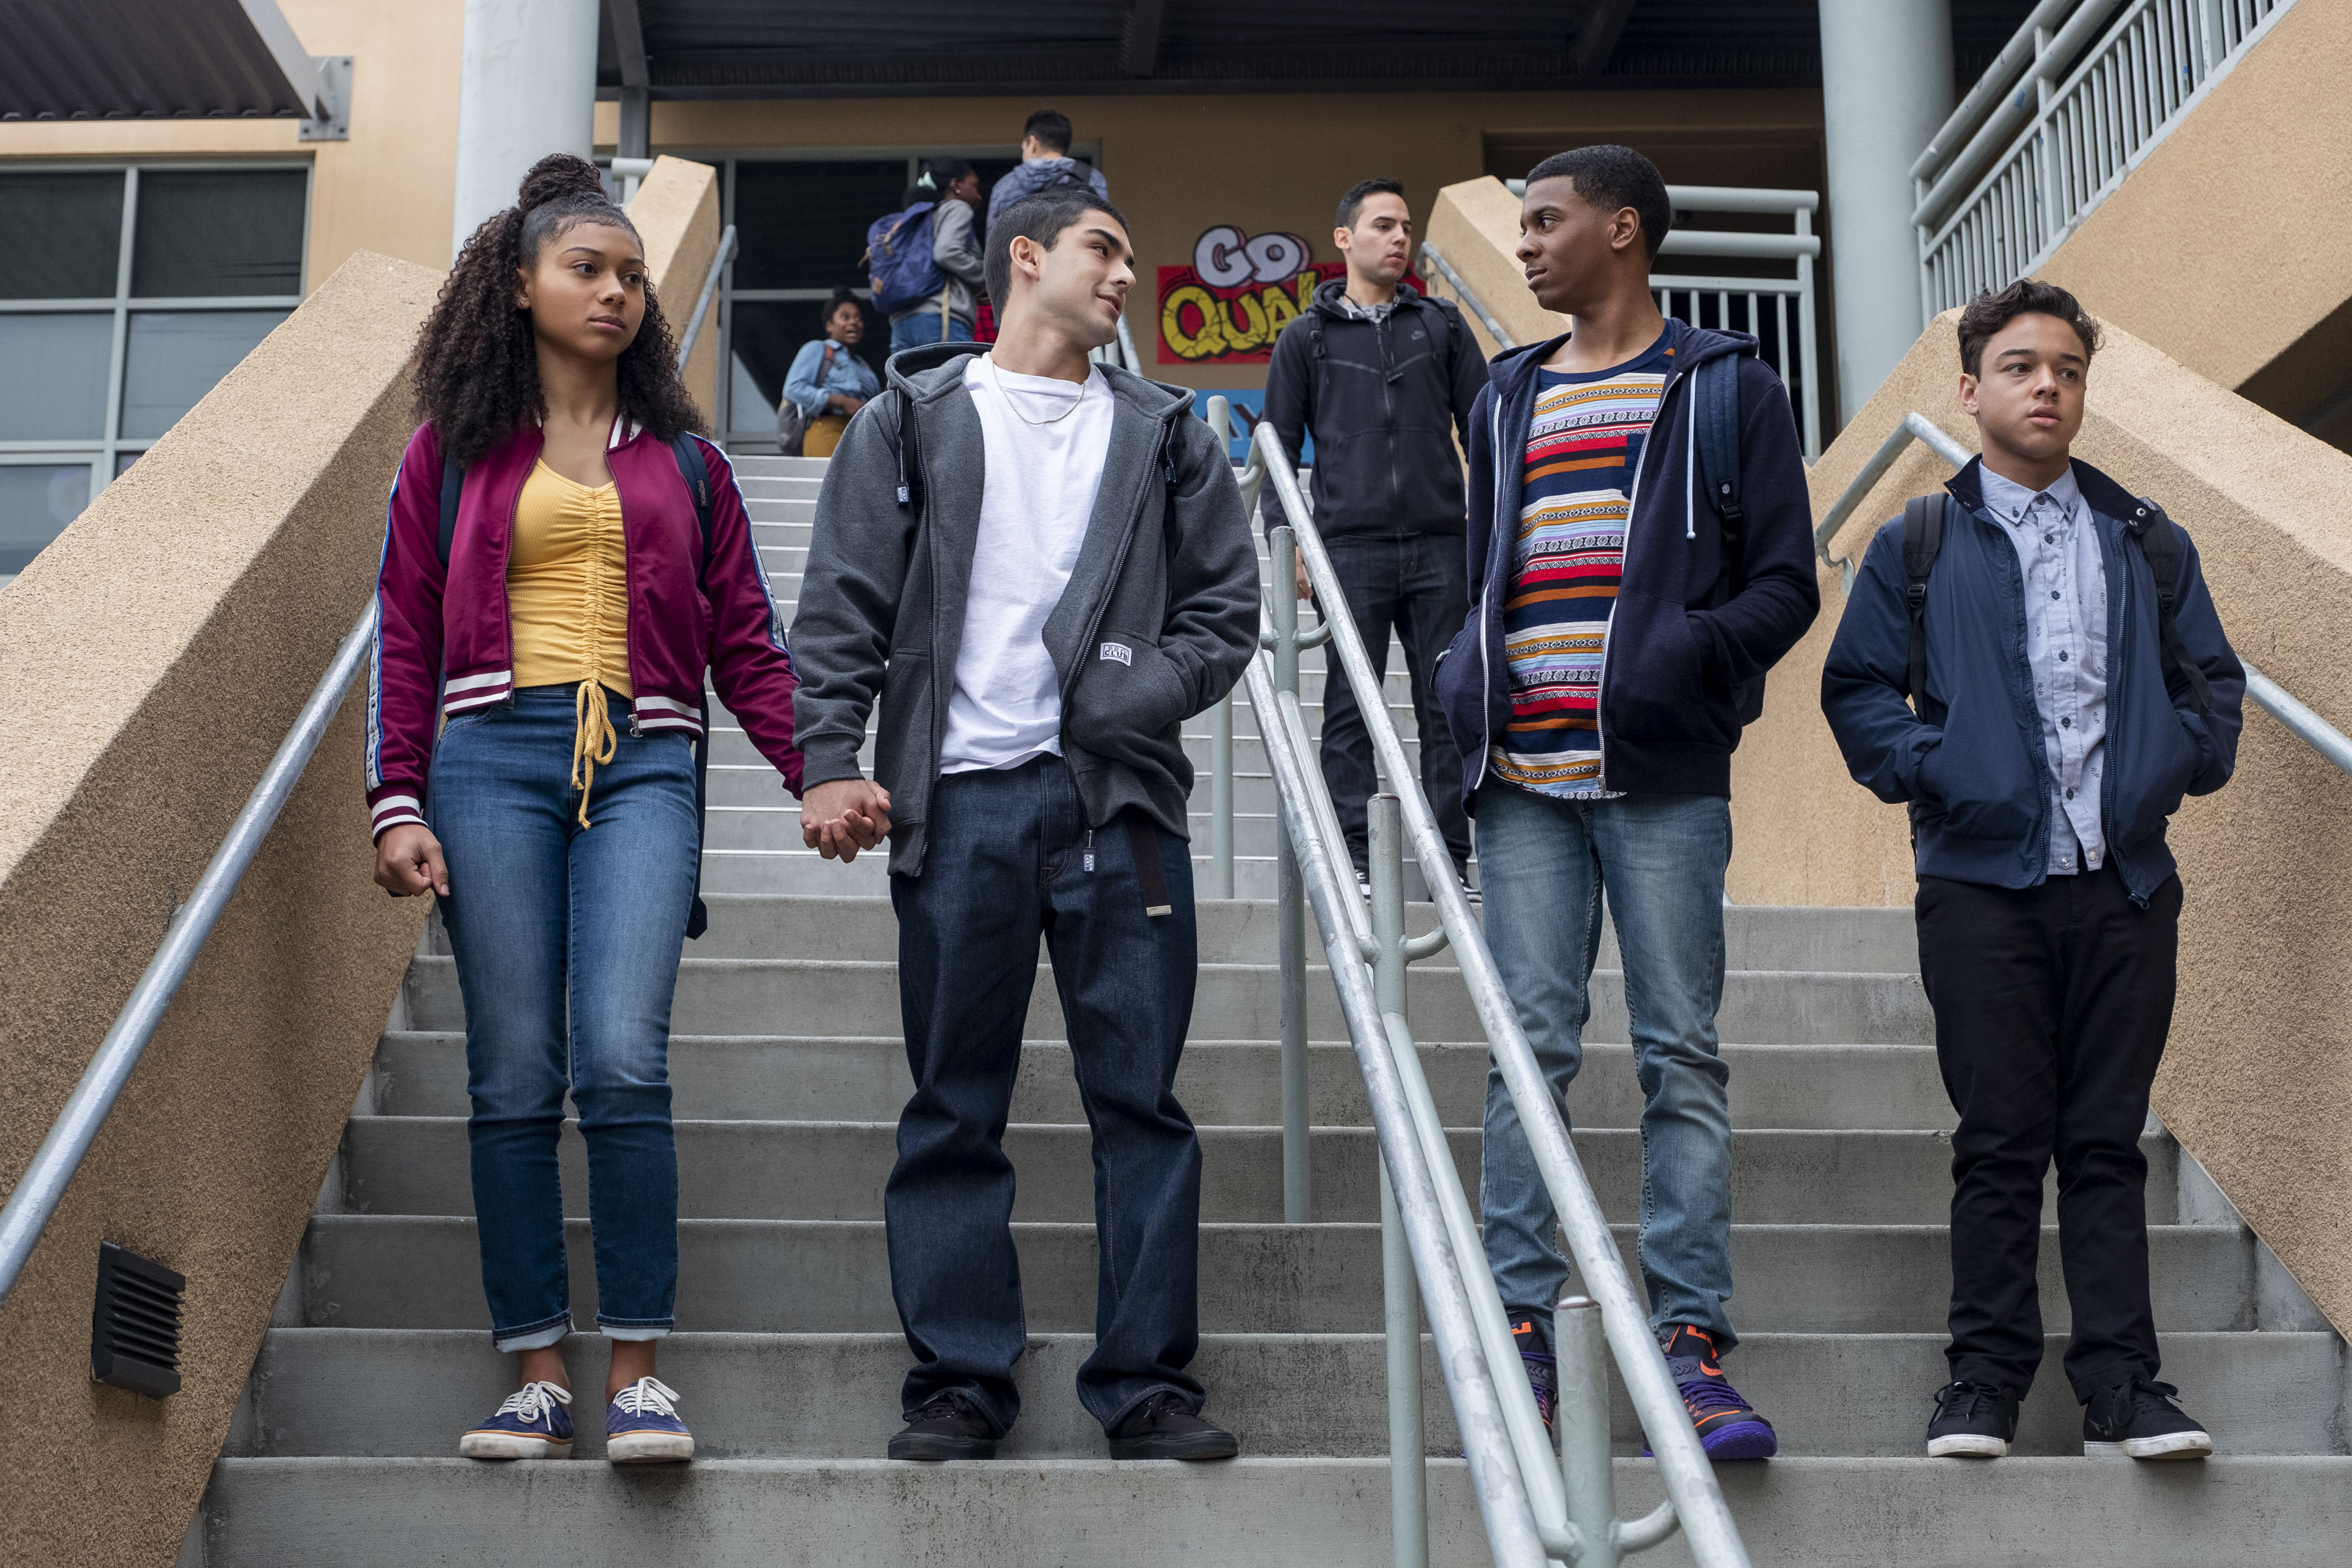 Watch on my block season 2 episode 8 online free